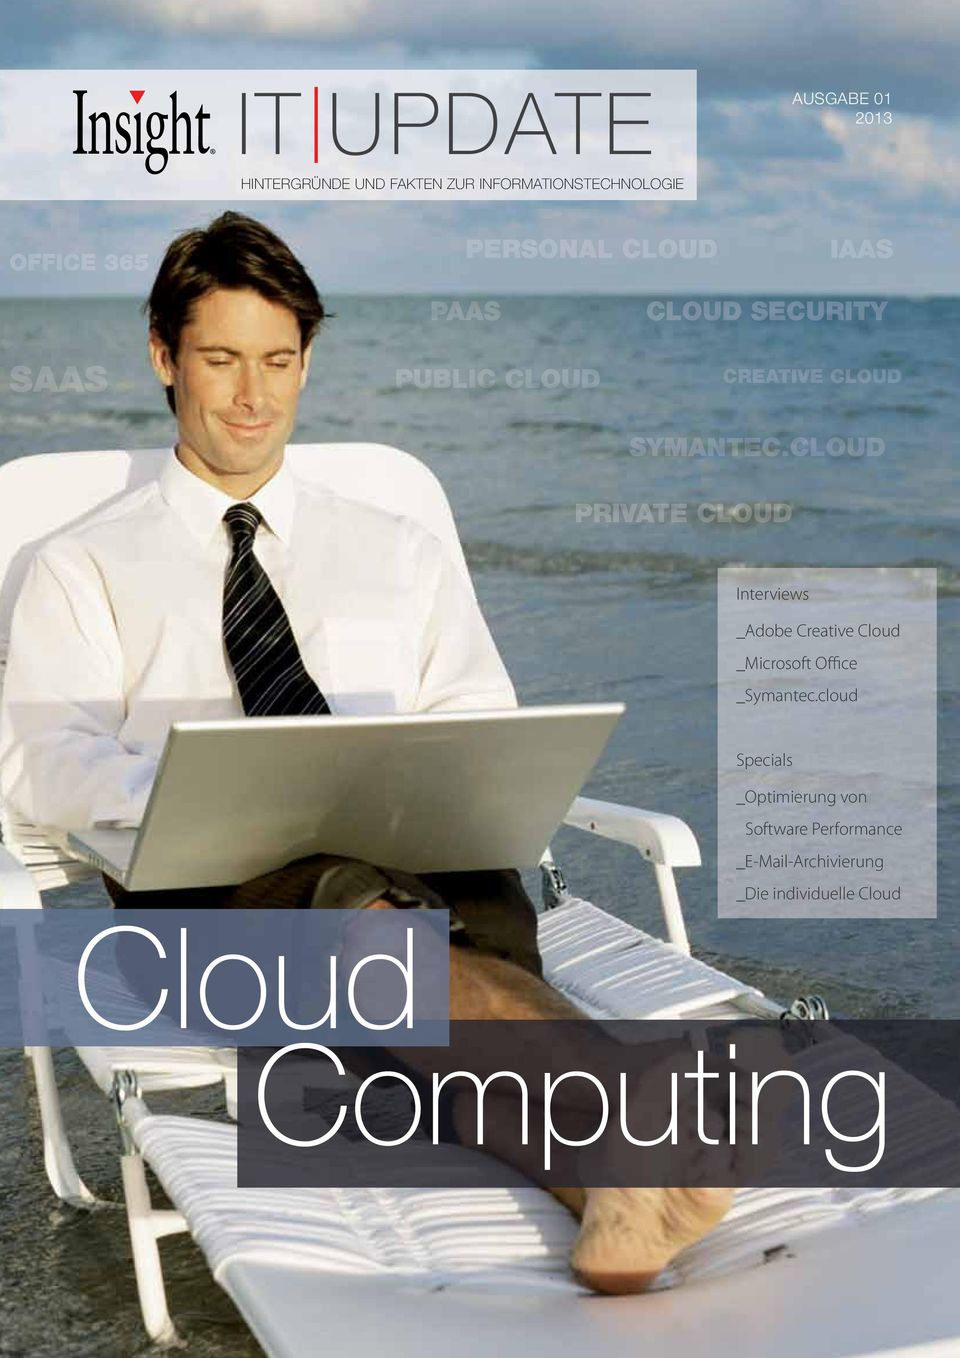 CLOUD PRIVATE CLOUD Interviews _Adobe Creative Cloud _Microsoft Office _Symantec.